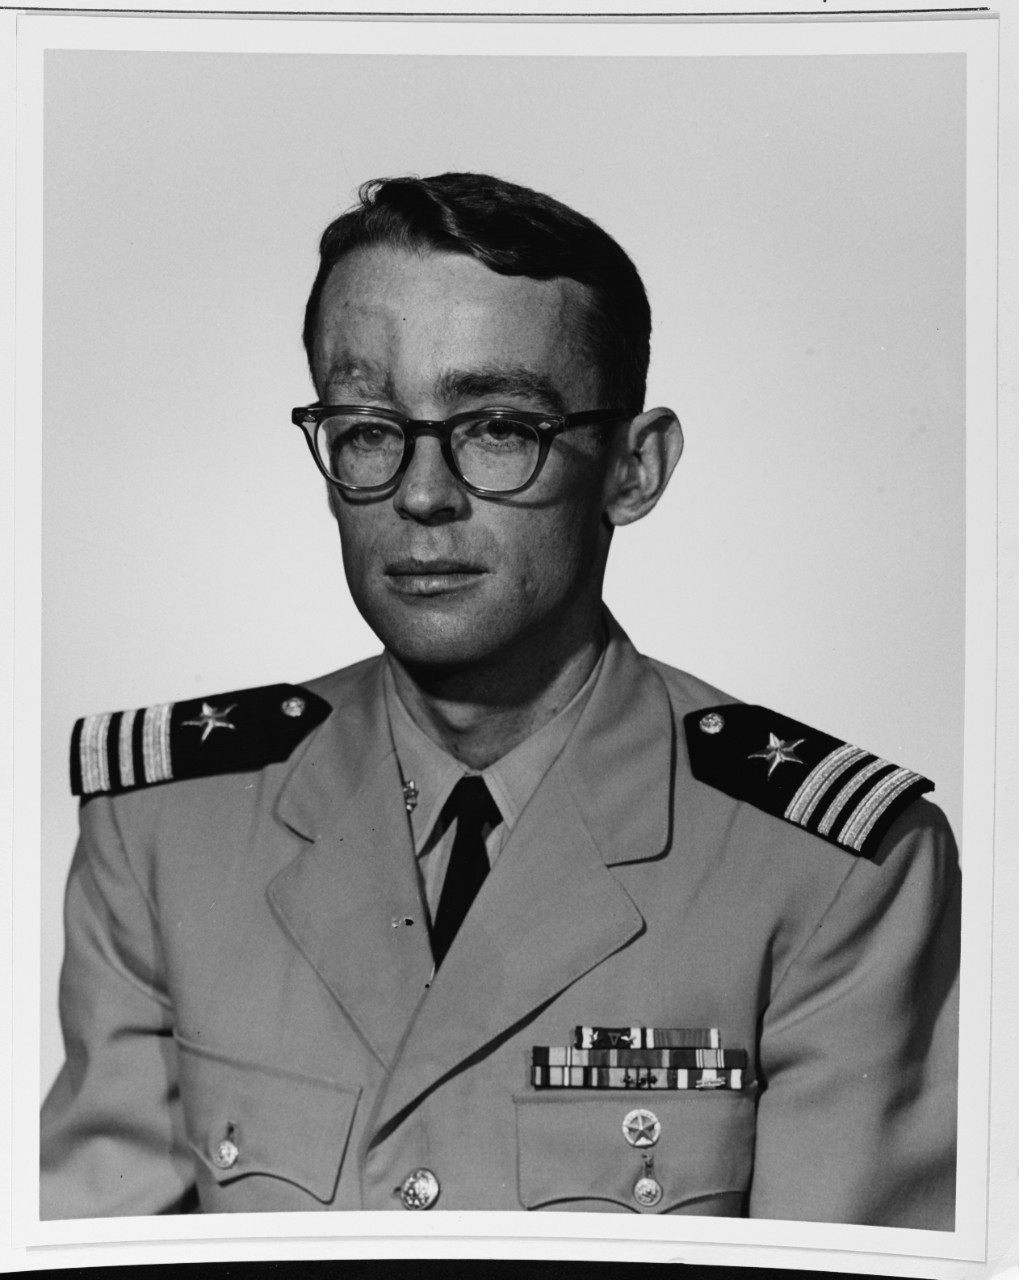 Lieutenant Commander Thomas G. Kelley, USN